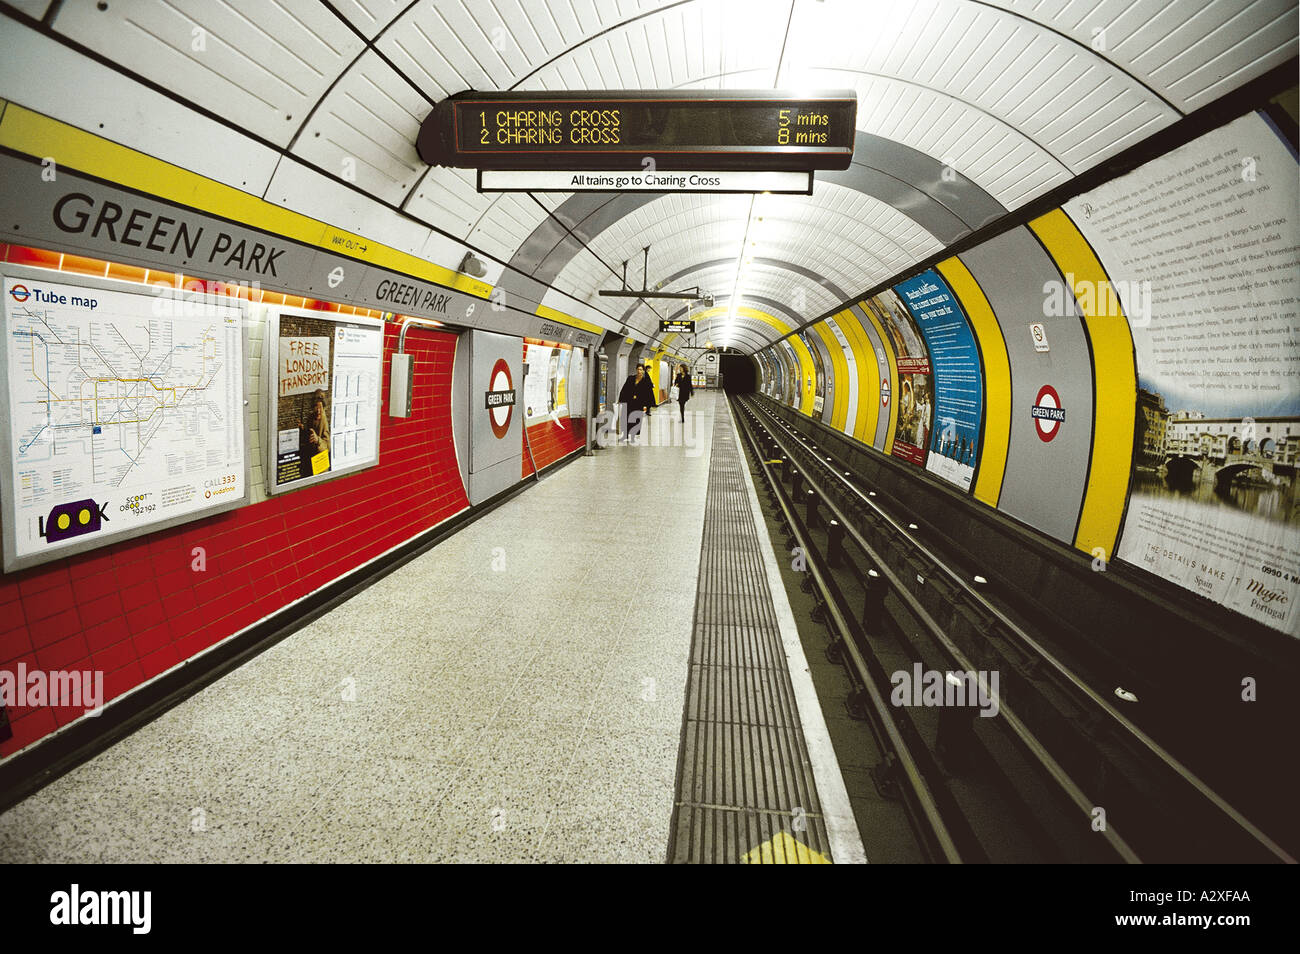 Green Park Tube Station Stock Photo Royalty Free Image 1978281